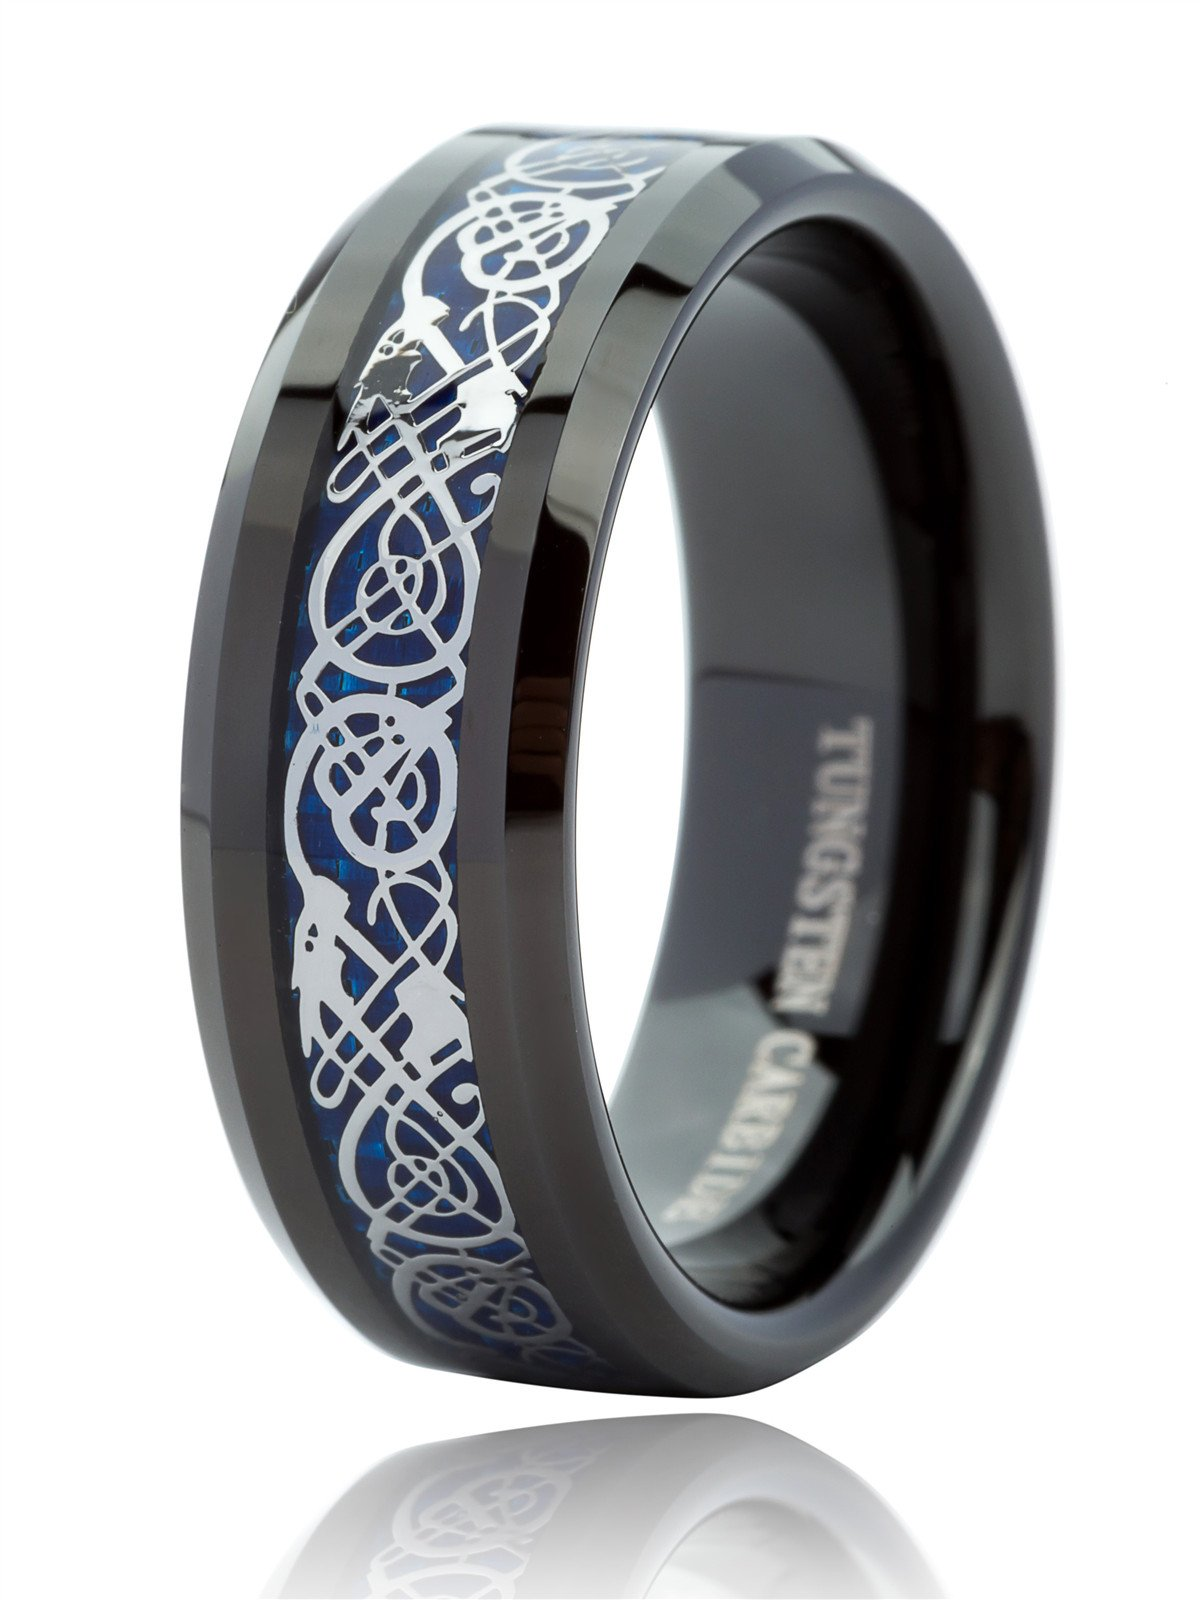 Just Lsy Black Tungsten Rings for Men & Women Blue Carbon Fiber Celtic Dragon Wedding Band Comfort Fit 8MM Size 9.5-019